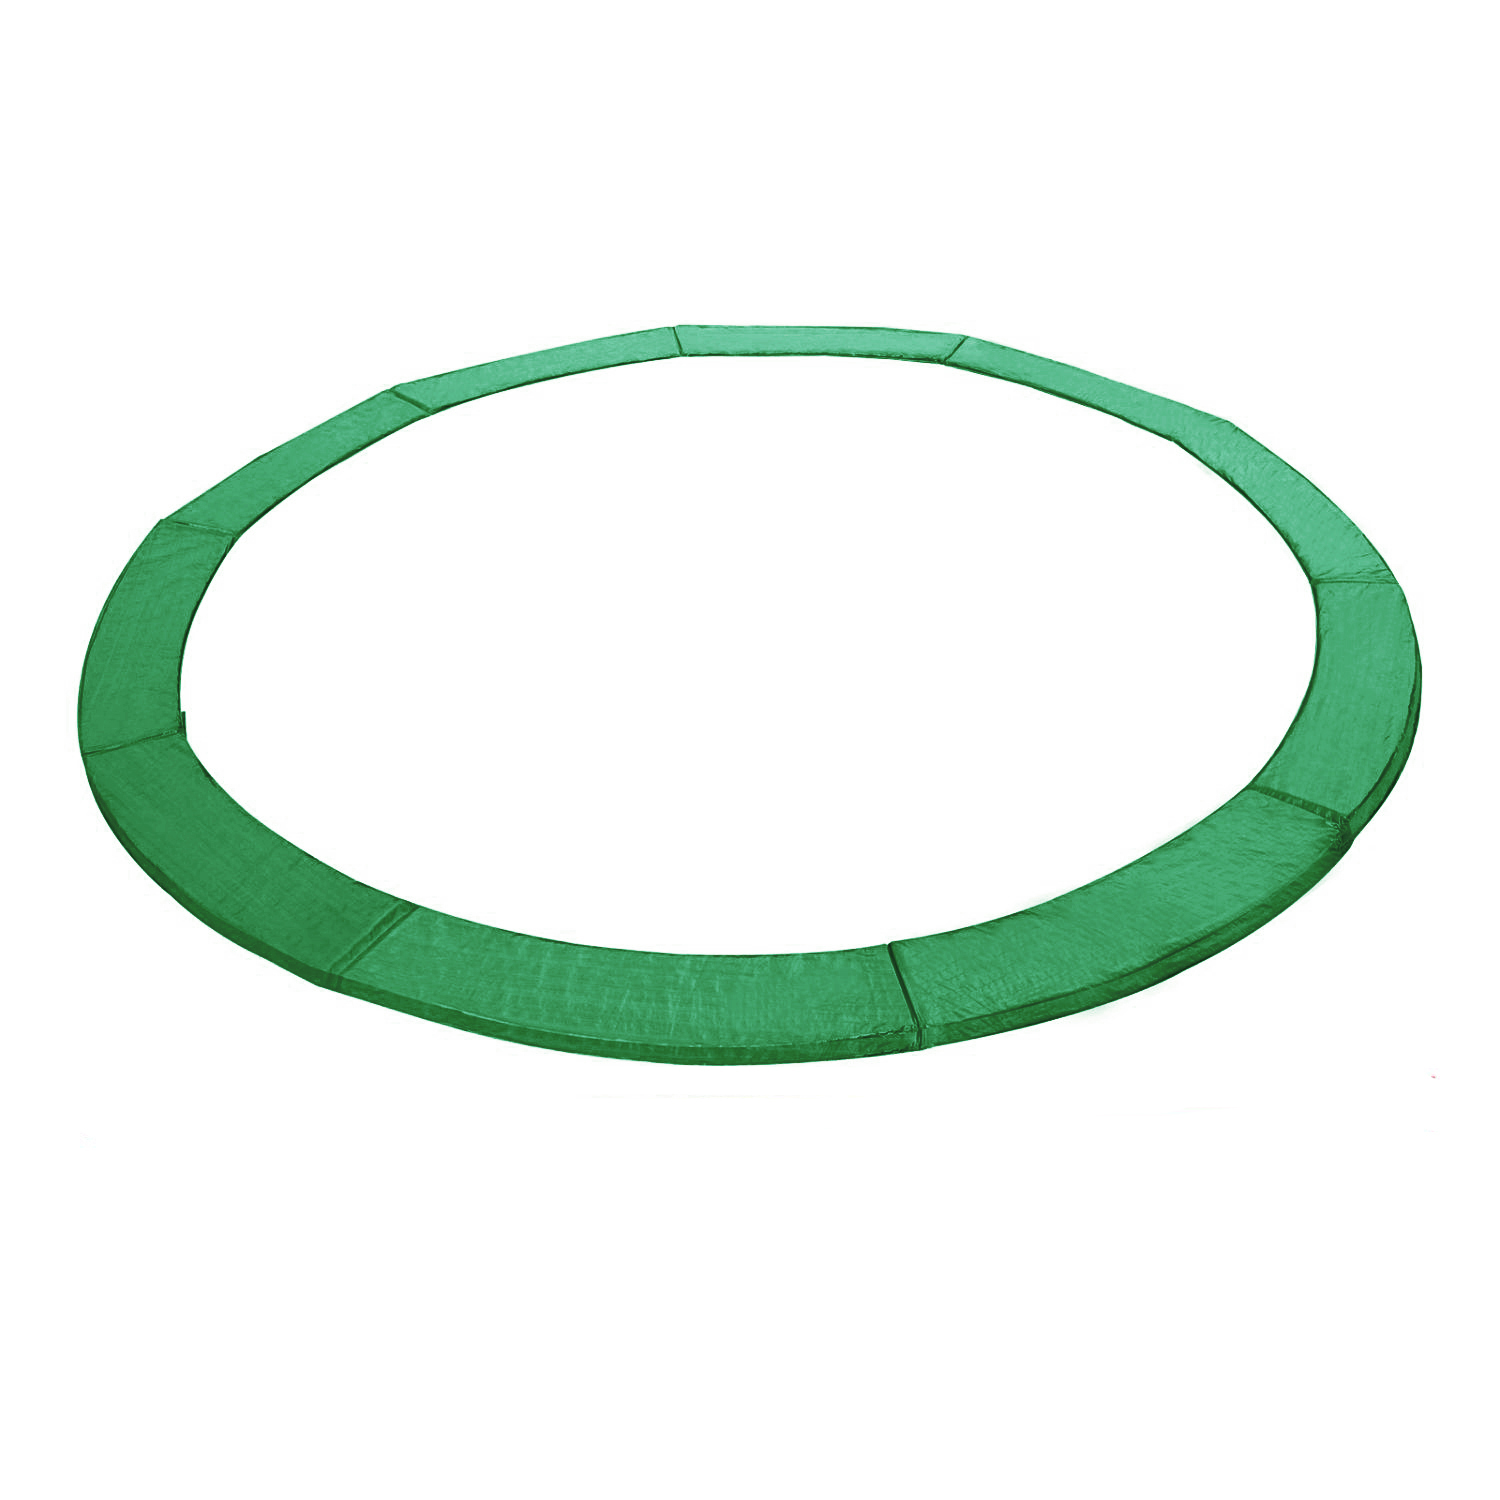 14 Ft Trampoline Safety Pad Epe Foam Spring: ExacMe 14' FT Trampoline Replacement Safety Pad Frame